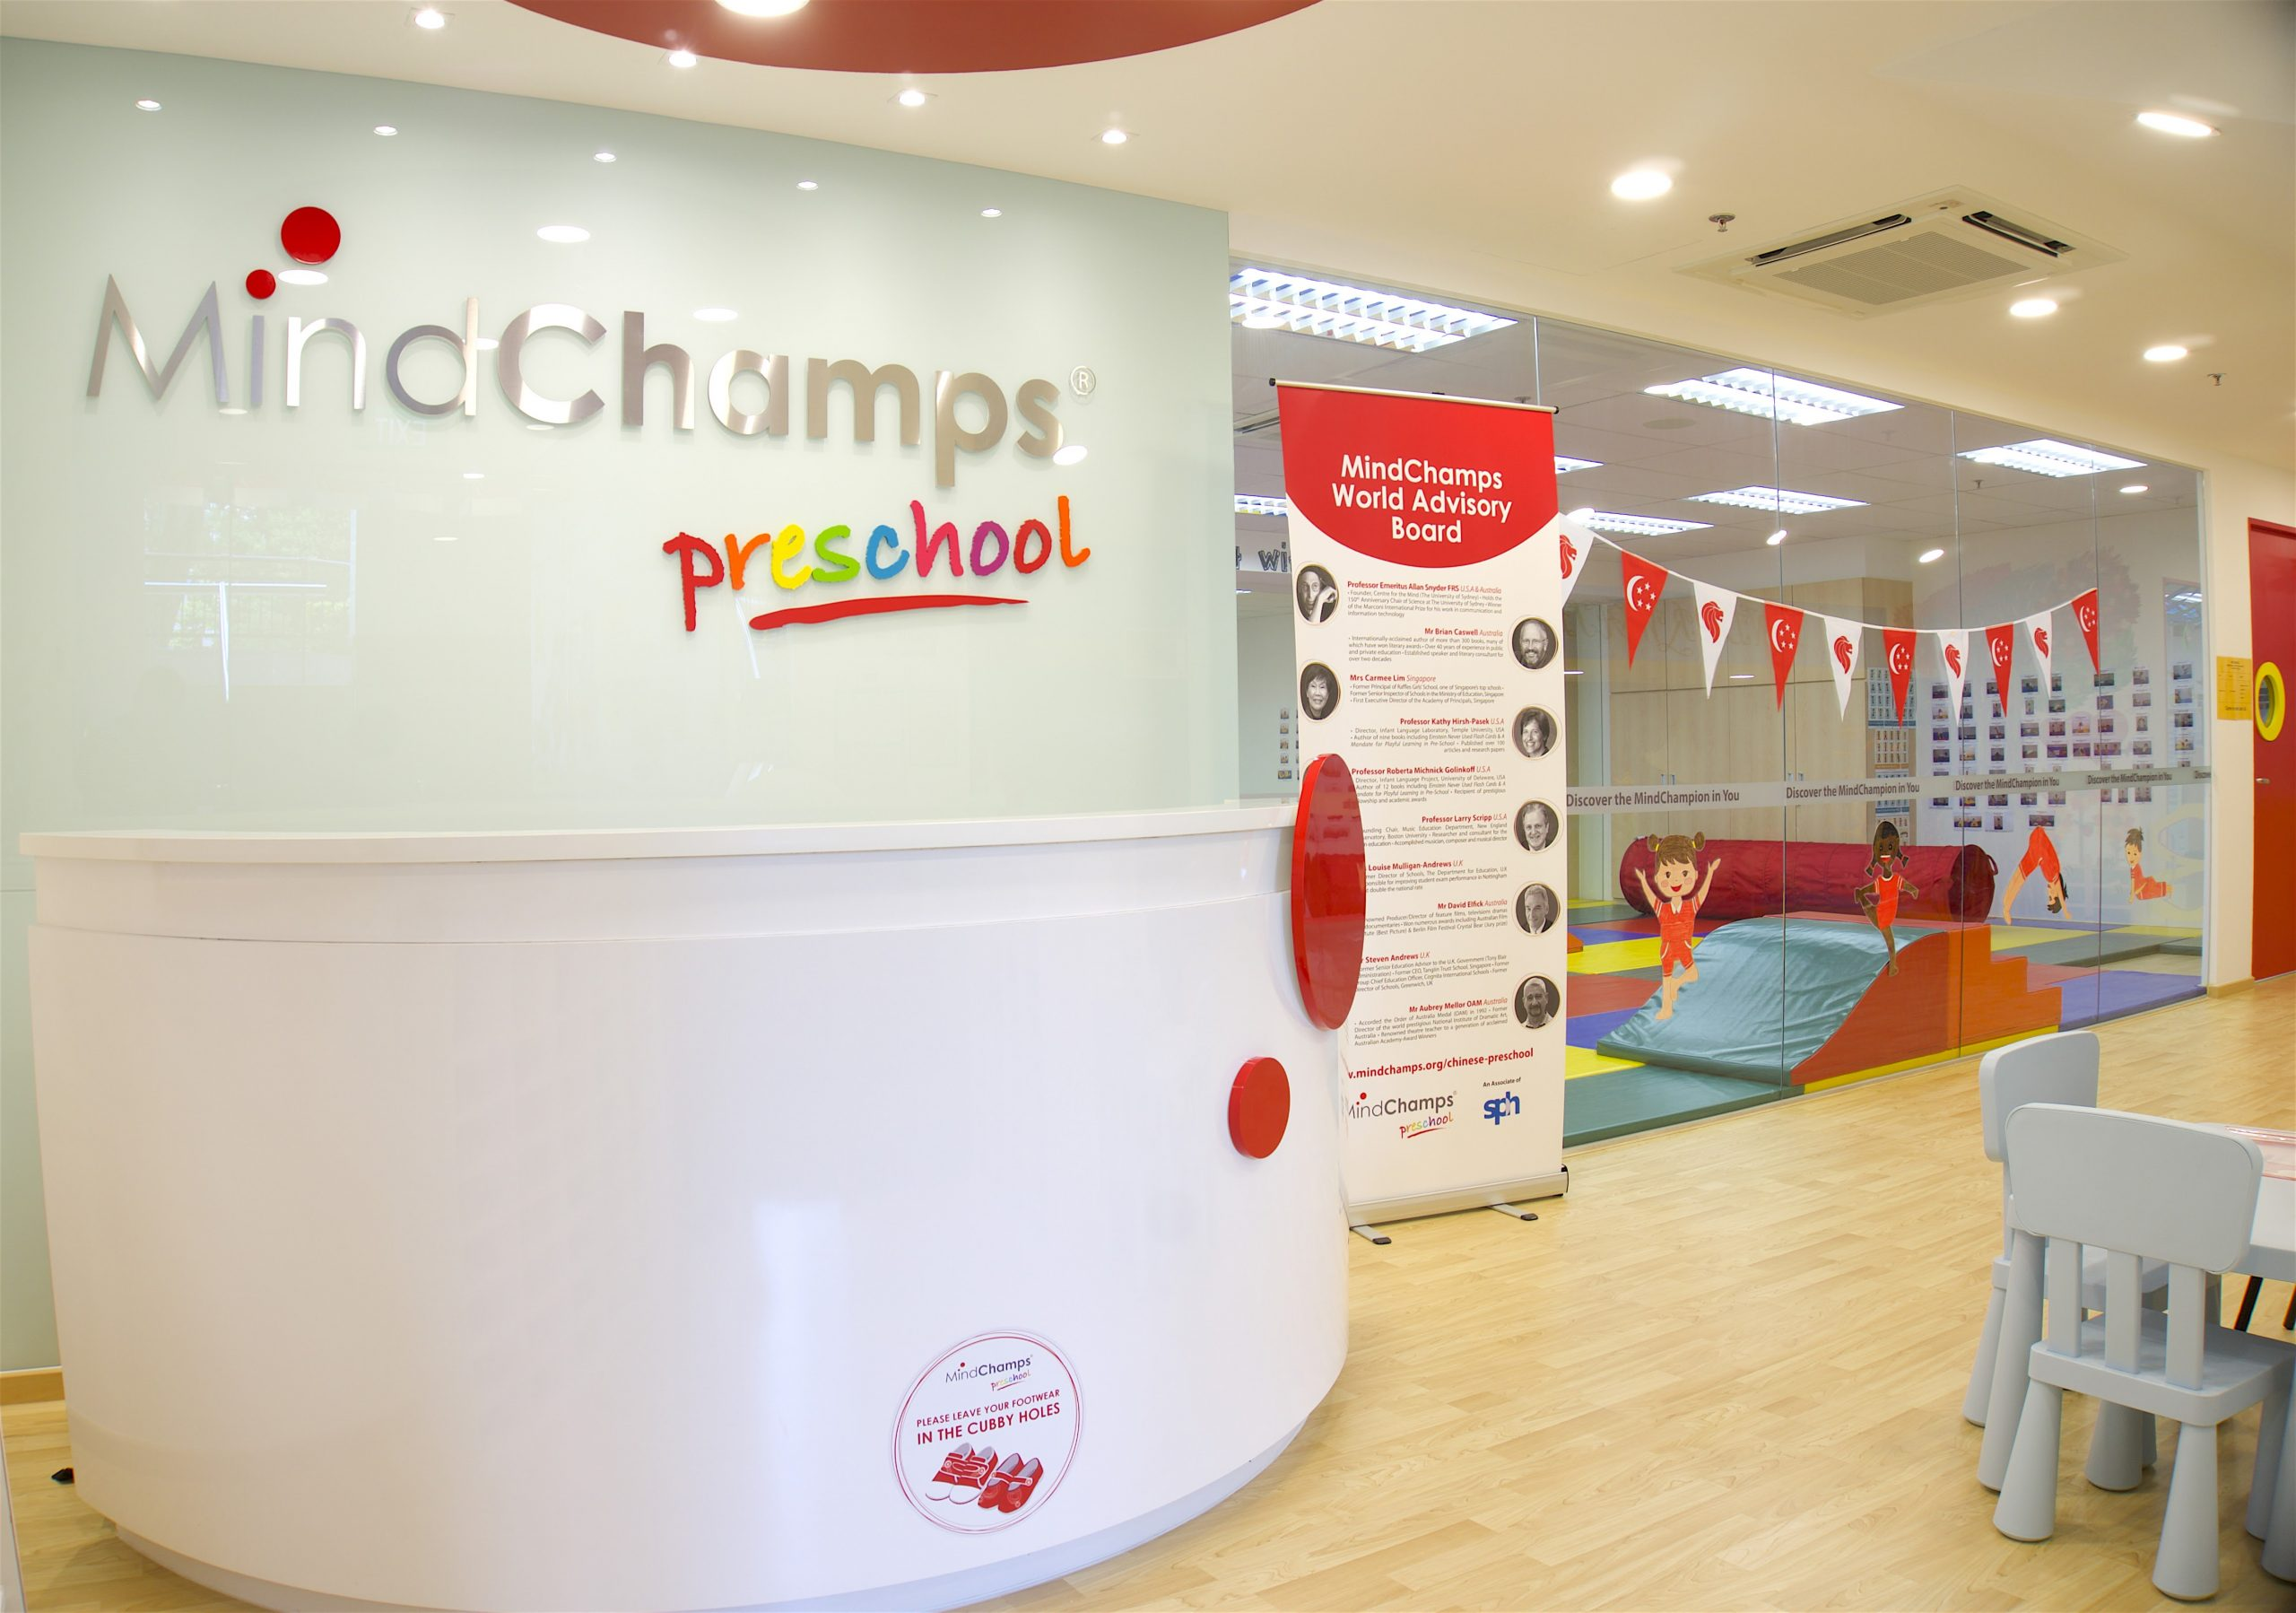 MindChamps Preschool in orchard